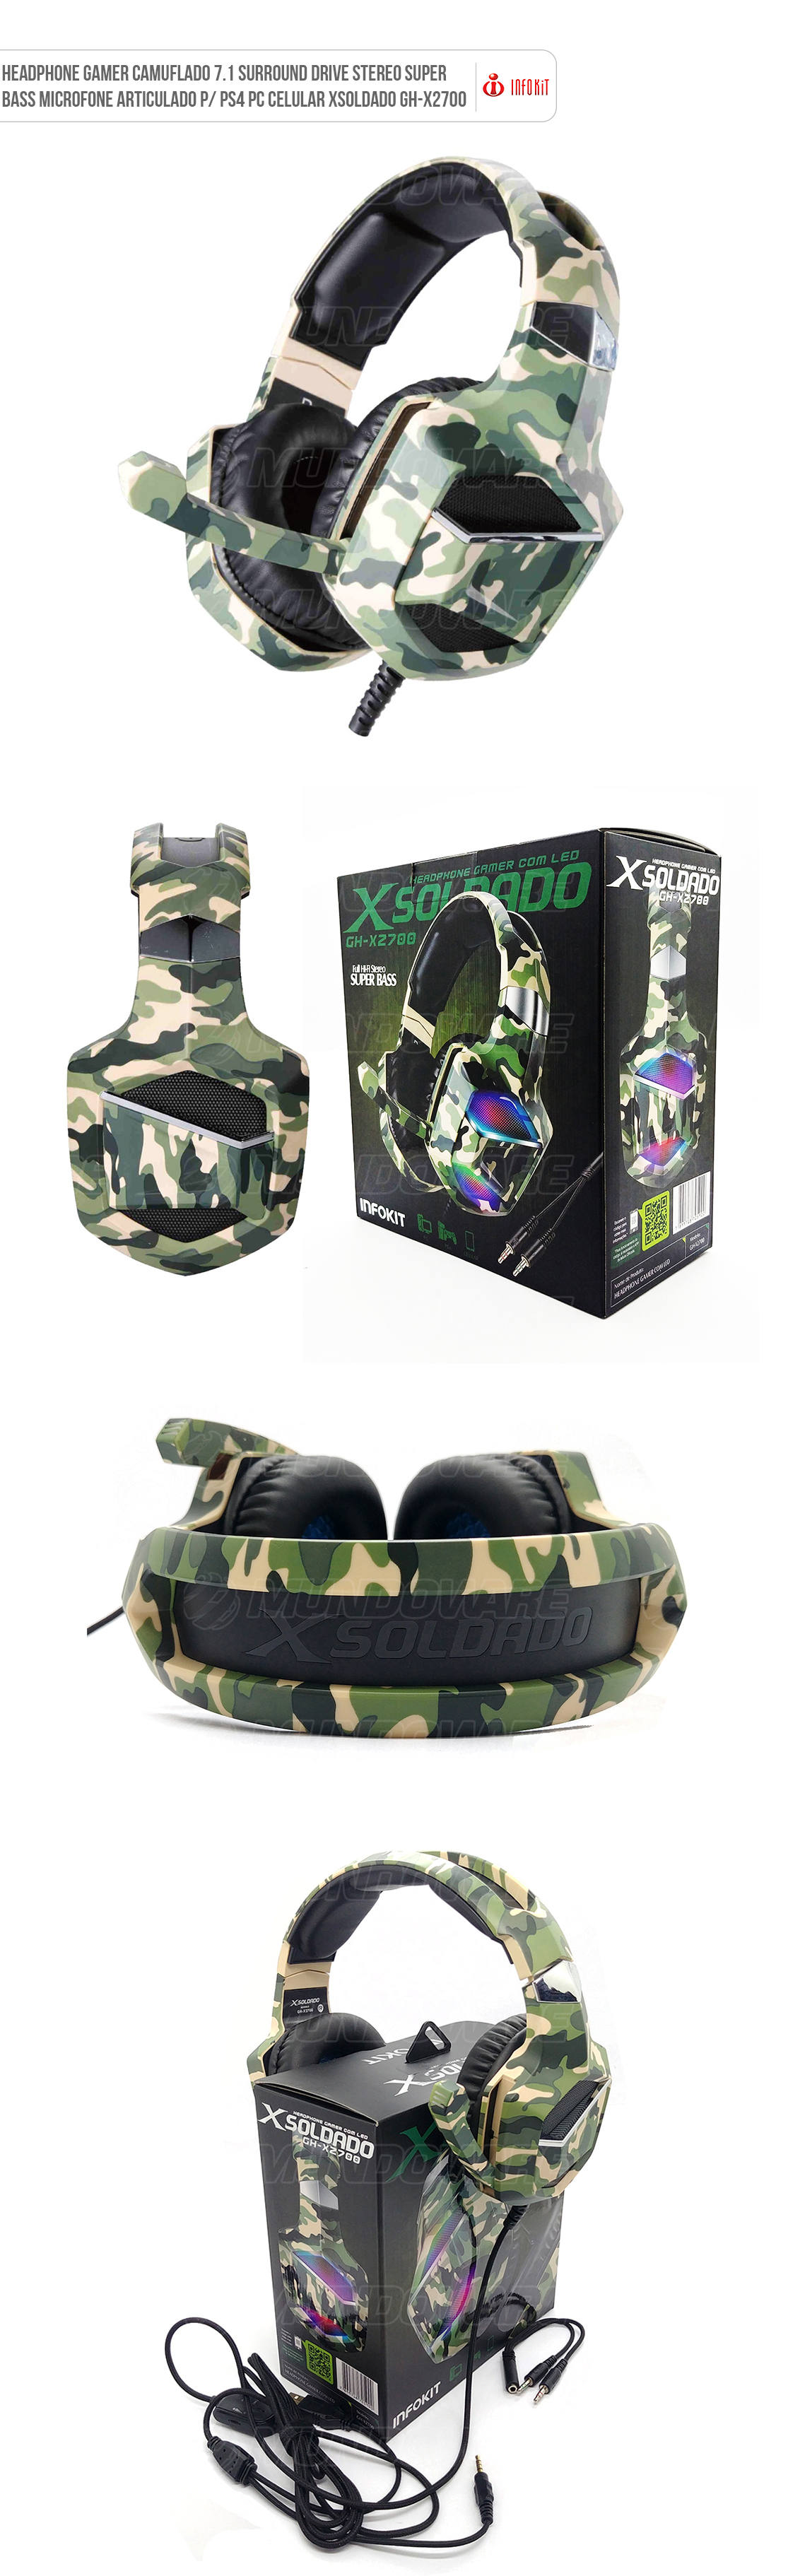 Headphone Gamer Camuflado 7.1 Surround Drive Stereo Super Bass Microfone Articulado para PS4 Computador Celular XSoldado GHX2700